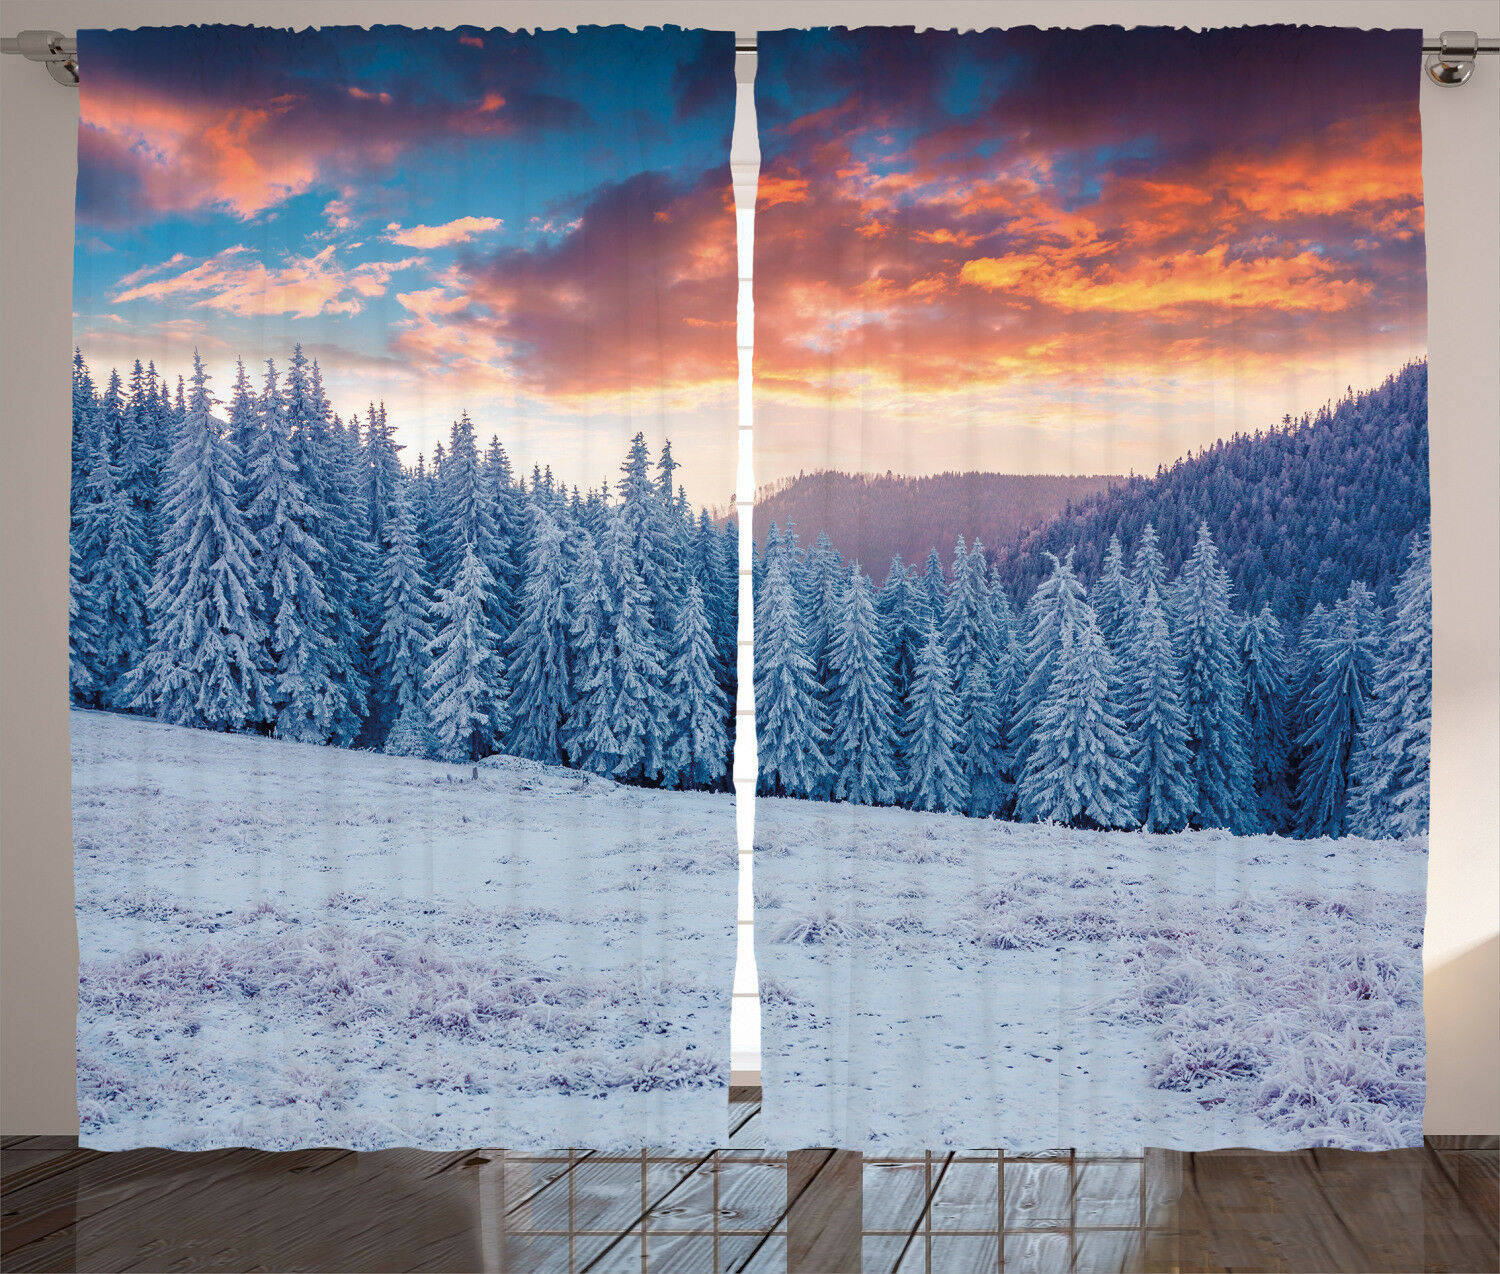 Nature Curtains Winter Snowy Forest Sky Window Window Window Drapes 2 Panel Set 108x84 Inches 4e5c51